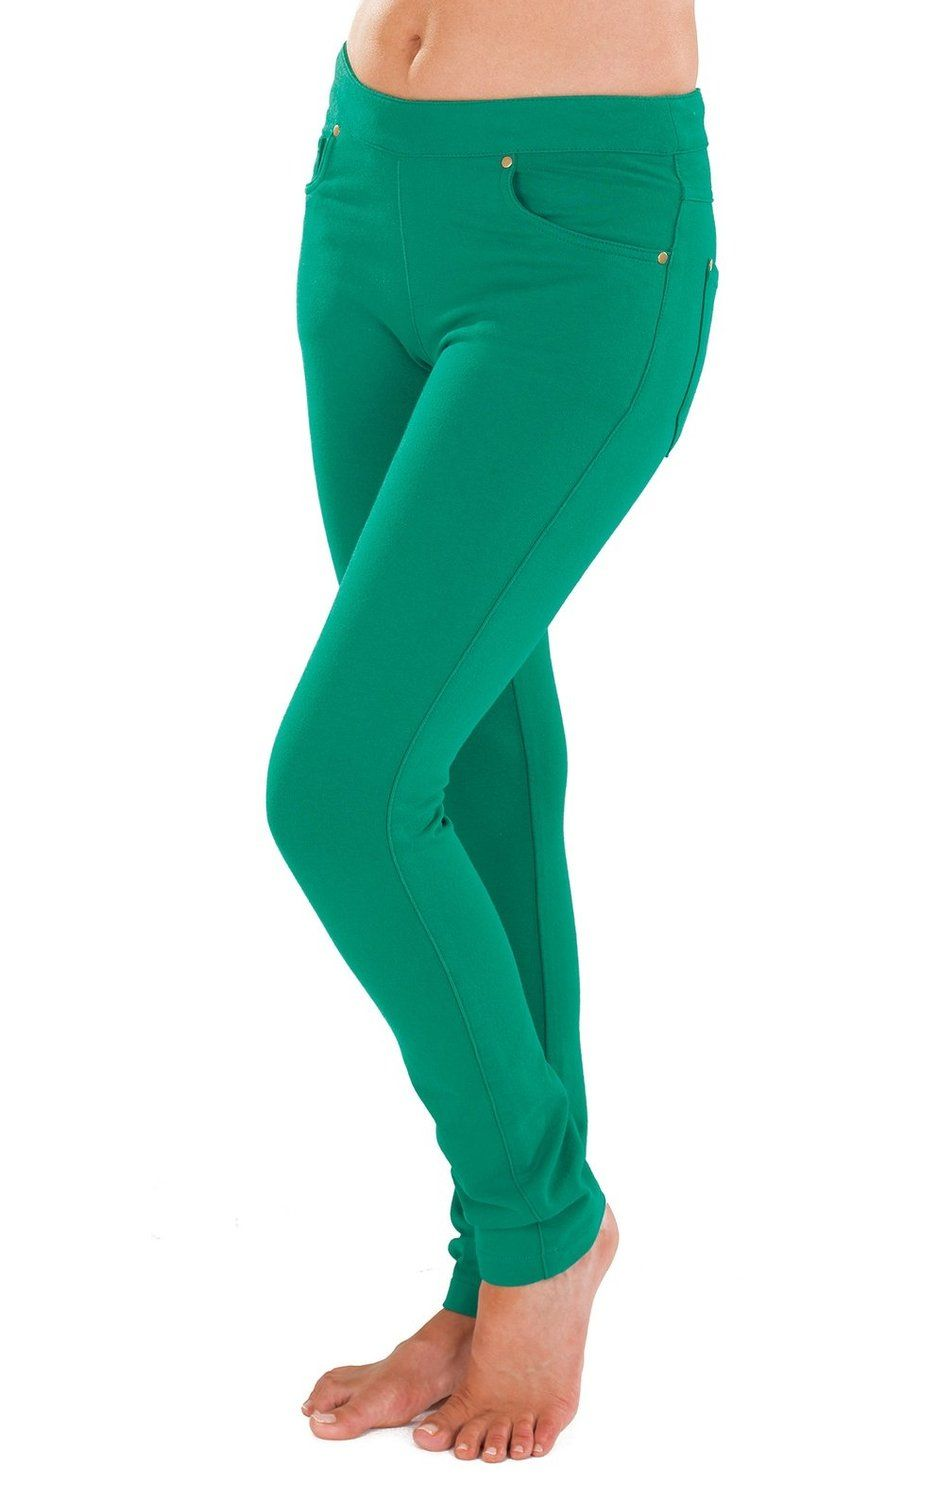 198b2b4a3 PajamaJeans COLORS - Skinny Green for Women at Amazon Women's Jeans store